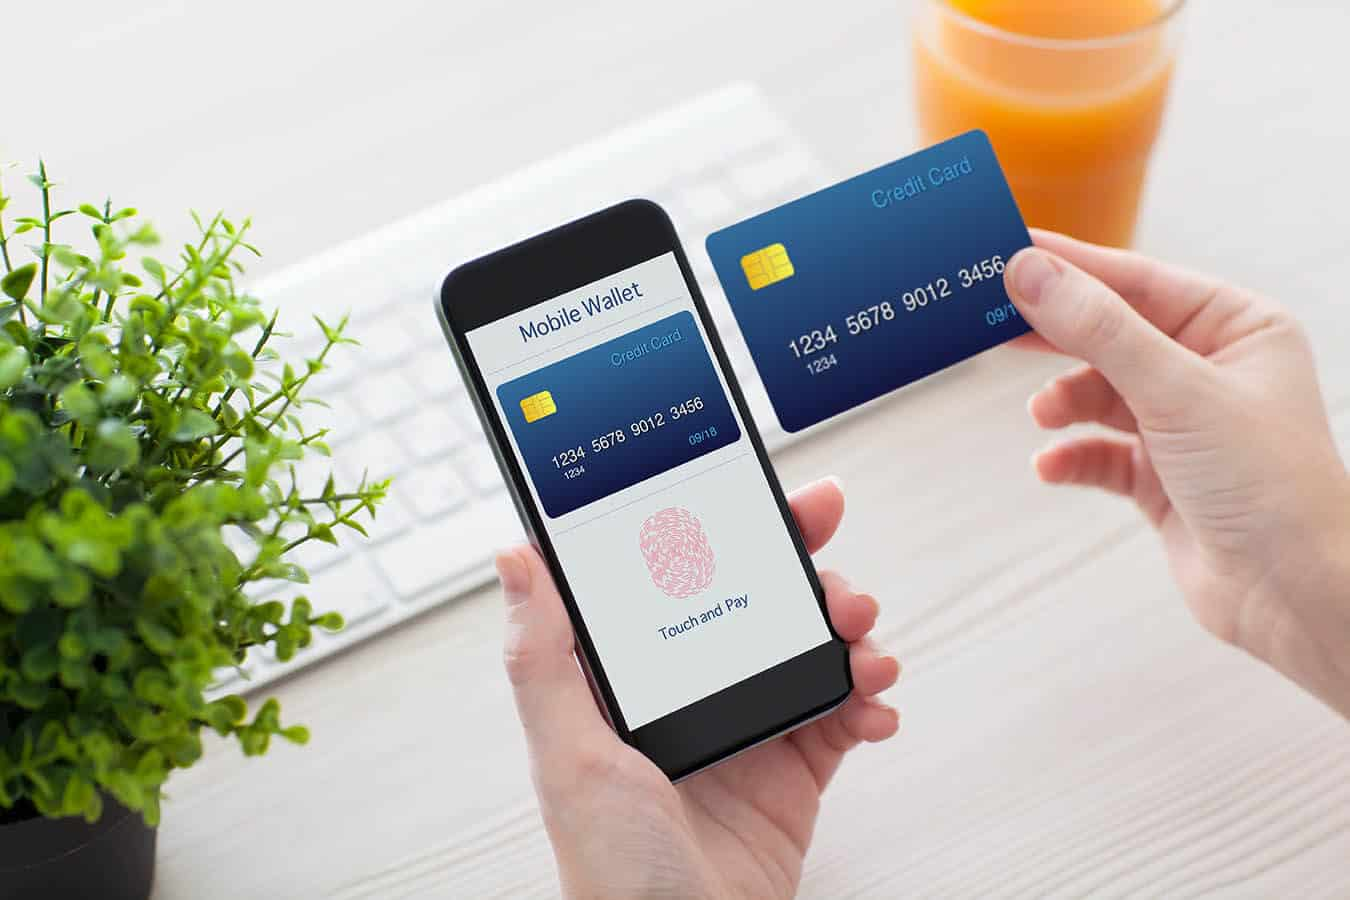 State of Pay – have mobile payments reached a turning point?